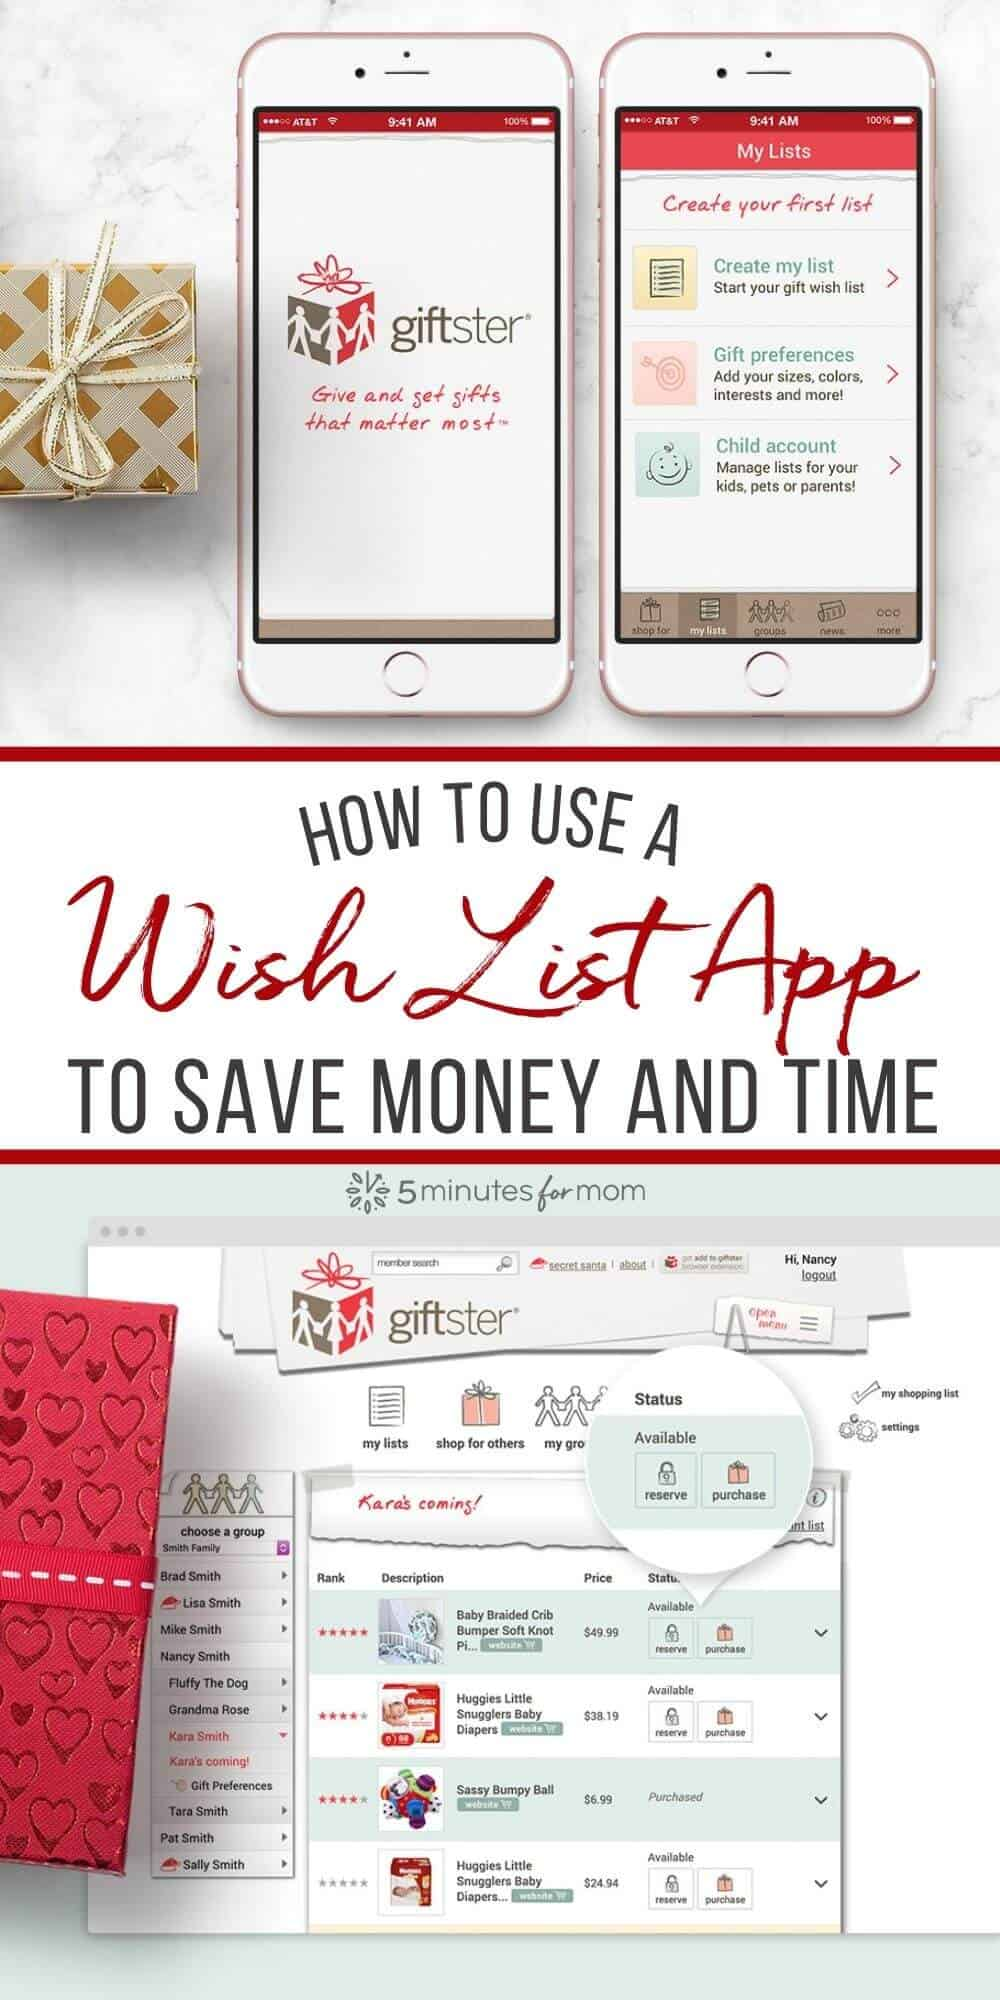 How to Use a Wish List App to Save Money and Time